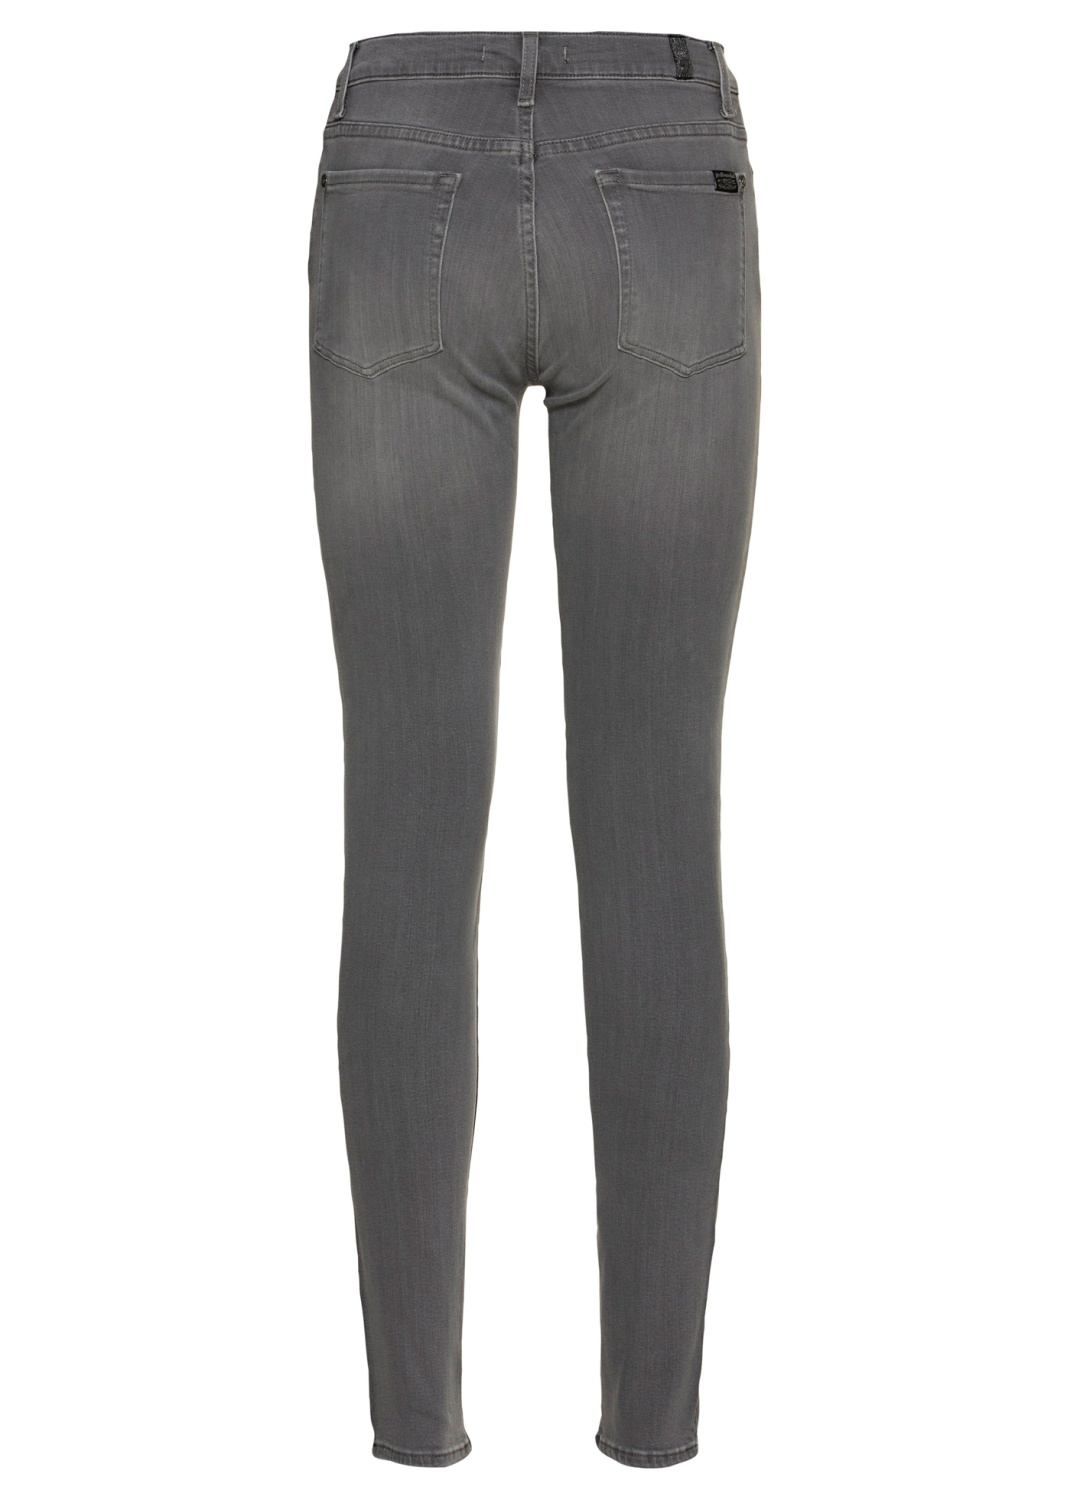 HW SKINNY Slim Illusion Luxe Bliss image number 1